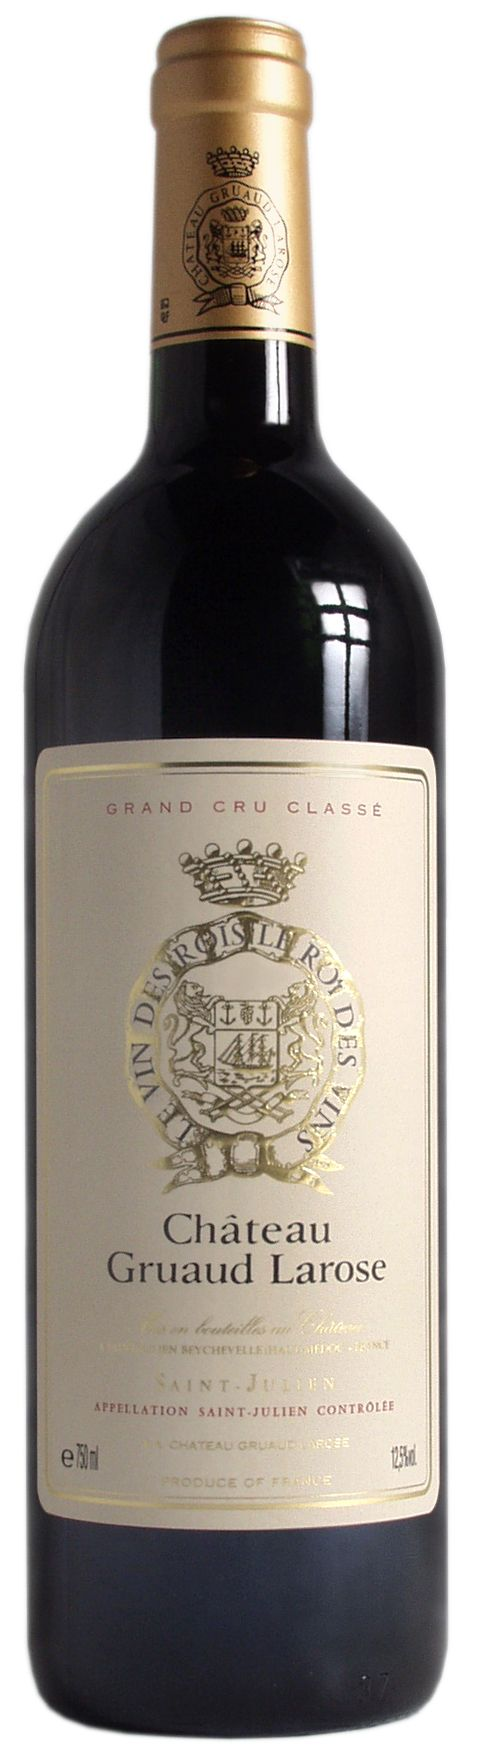 Château Gruaud-Larose - Saint-Julien; one of 14 Deuxieme Grand Crus Classes (Second Growths); Bordeaux